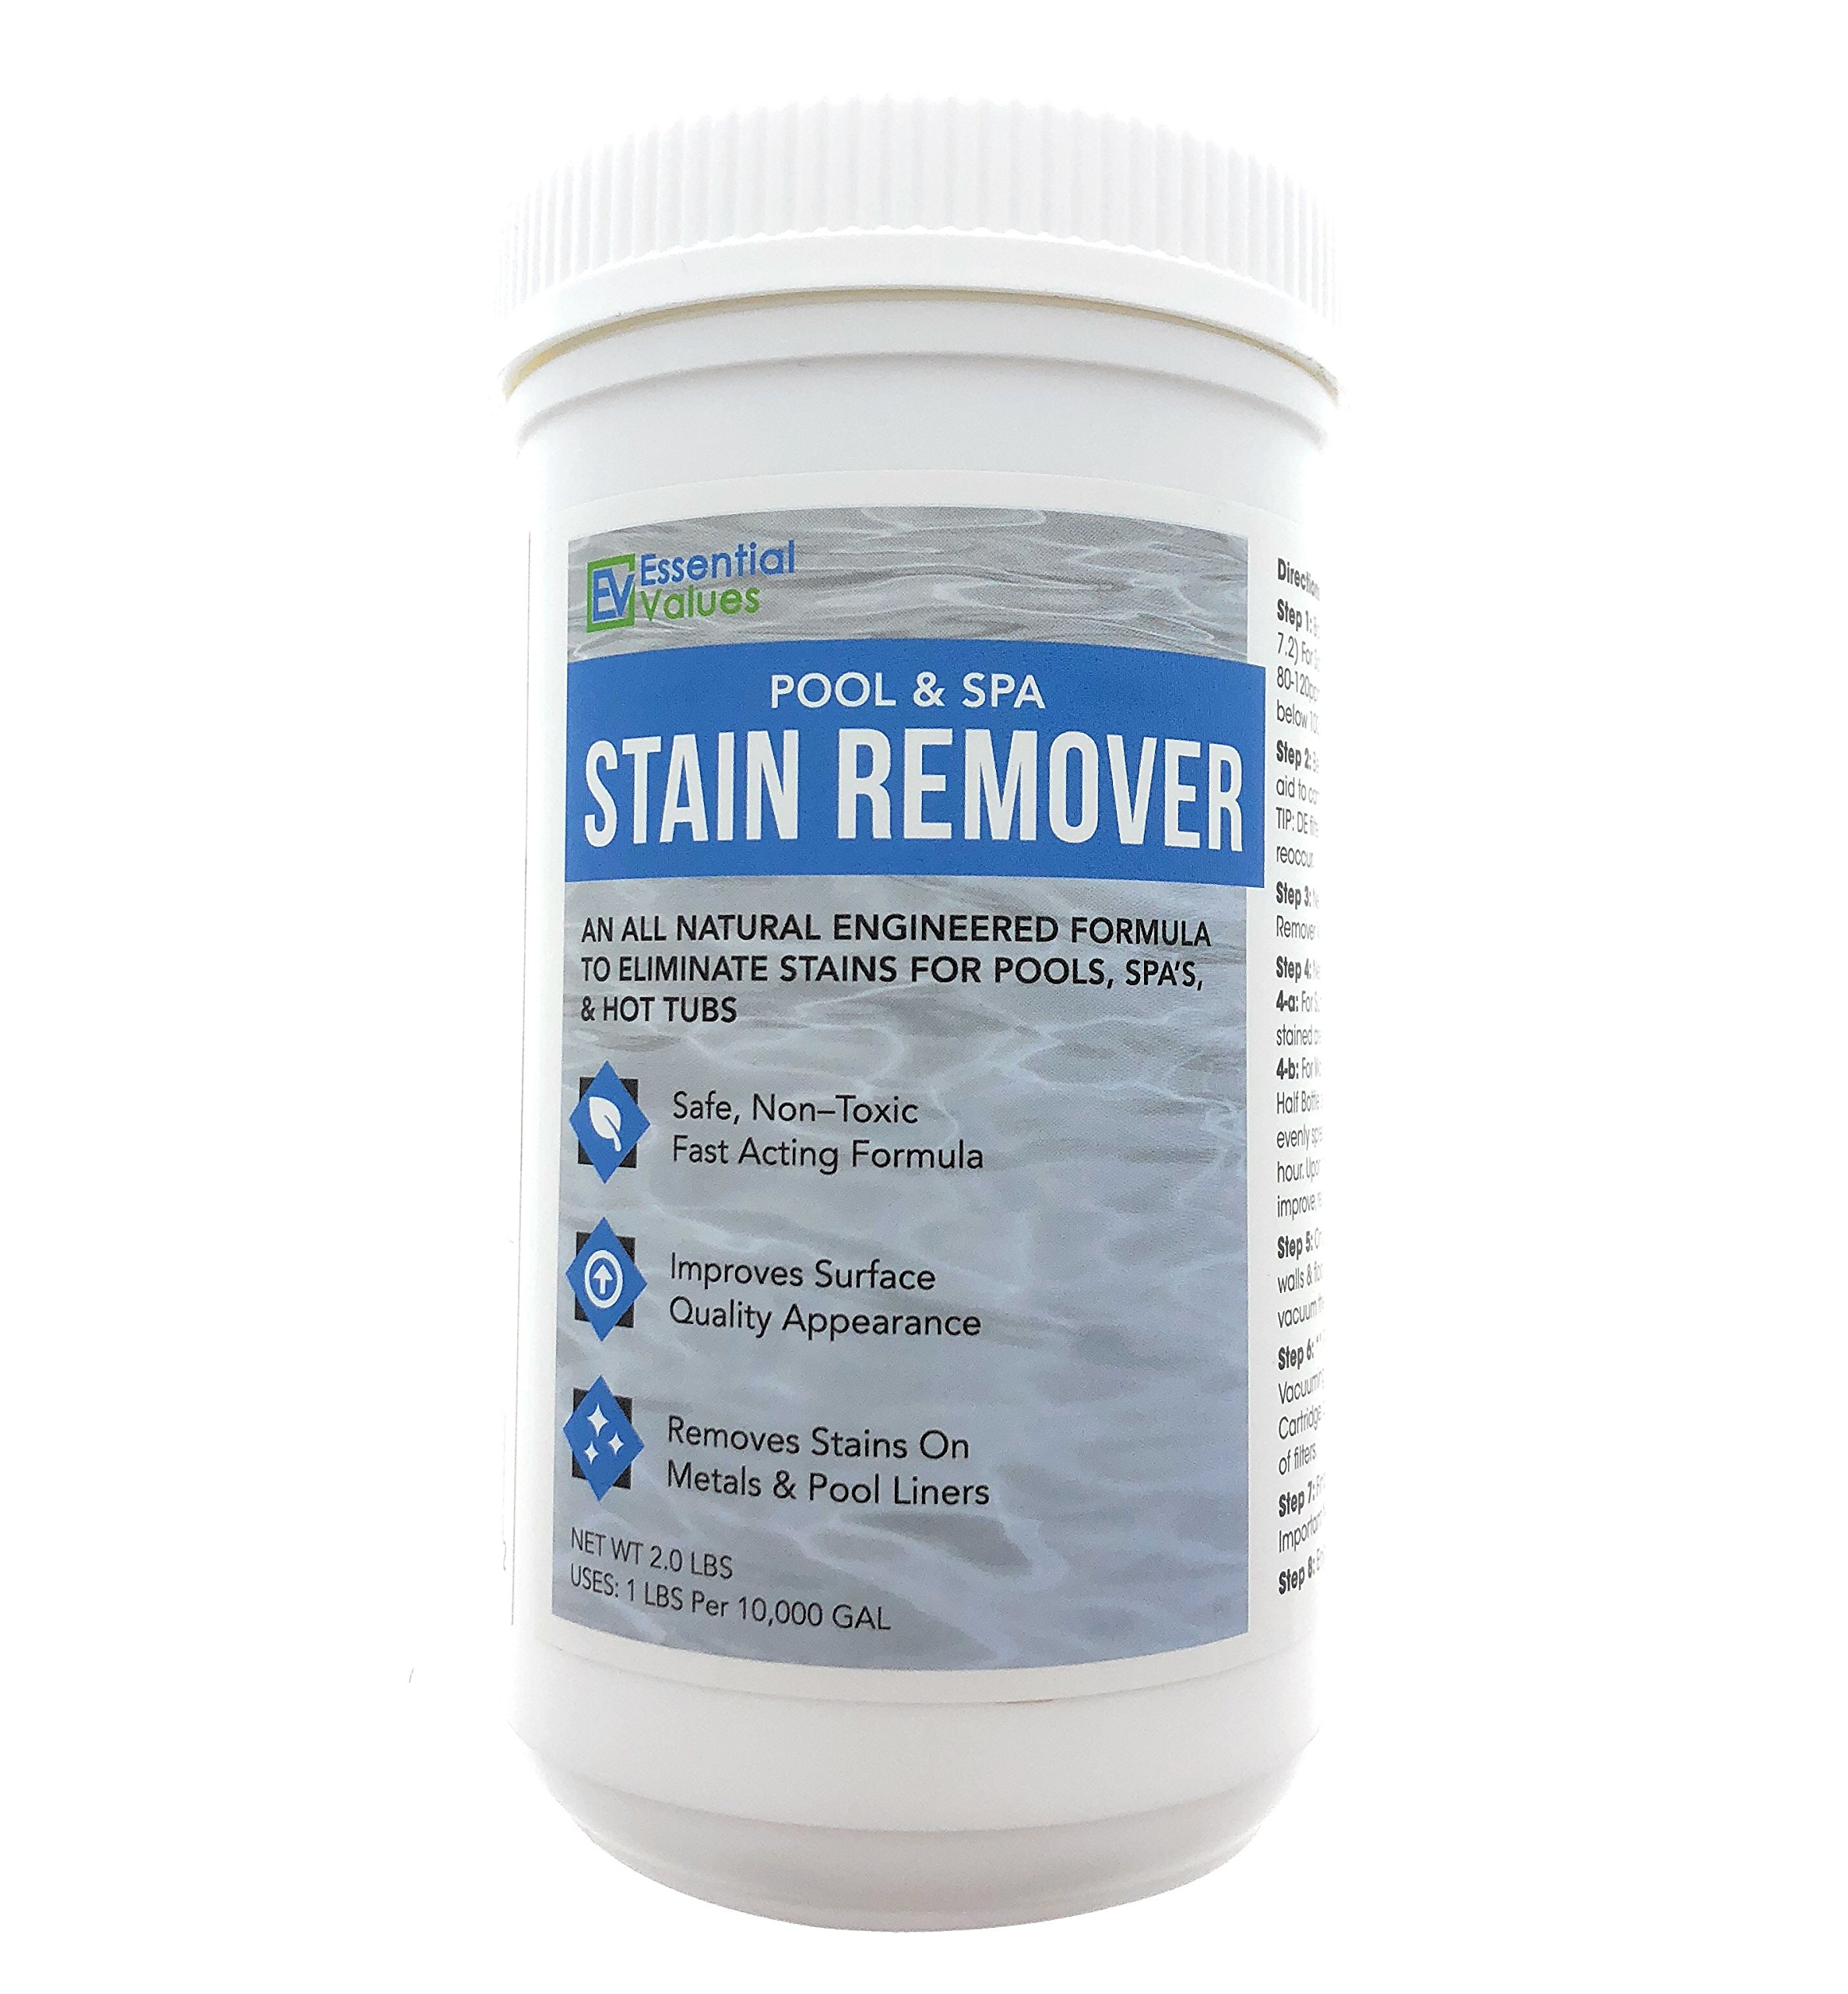 Essential Values Swimming Pool & Spa Stain Remover (2 LBS) - Natural & Safe, Works Best for Vinyl Liners, Fiberglass, Metals - Removes Rust & Other Tough Stains Without The Use of Harsh Chemicals by Essential Values